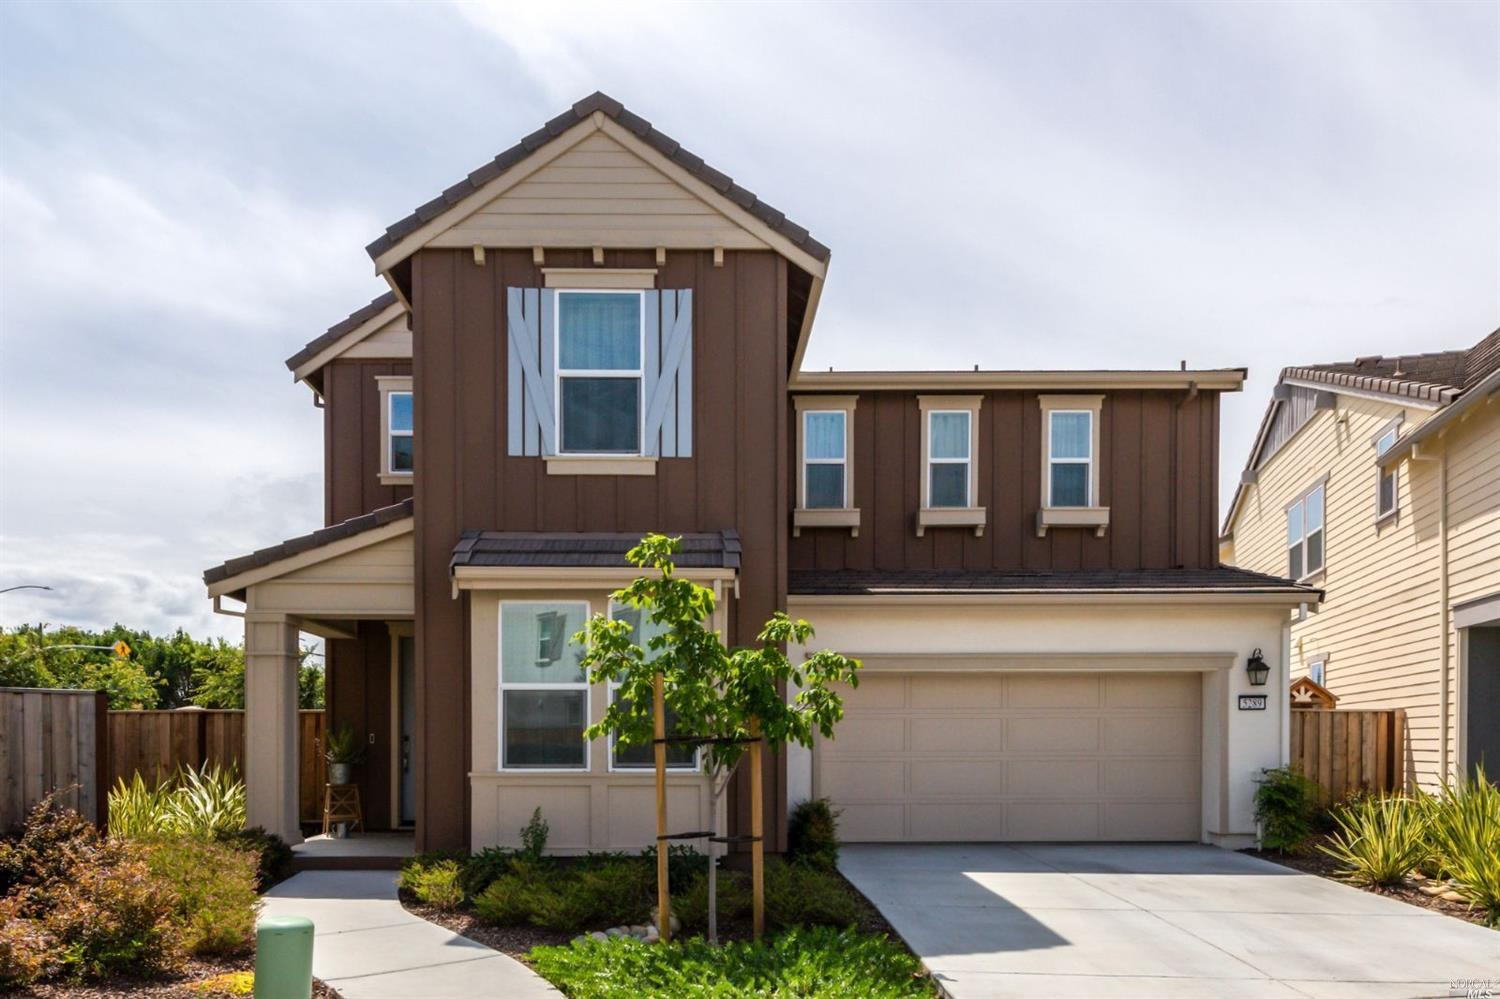 Move-in ready 4 BD/ 3 BA home in a highly sought-after neighborhood in Fairfield! This gorgeous 2-st